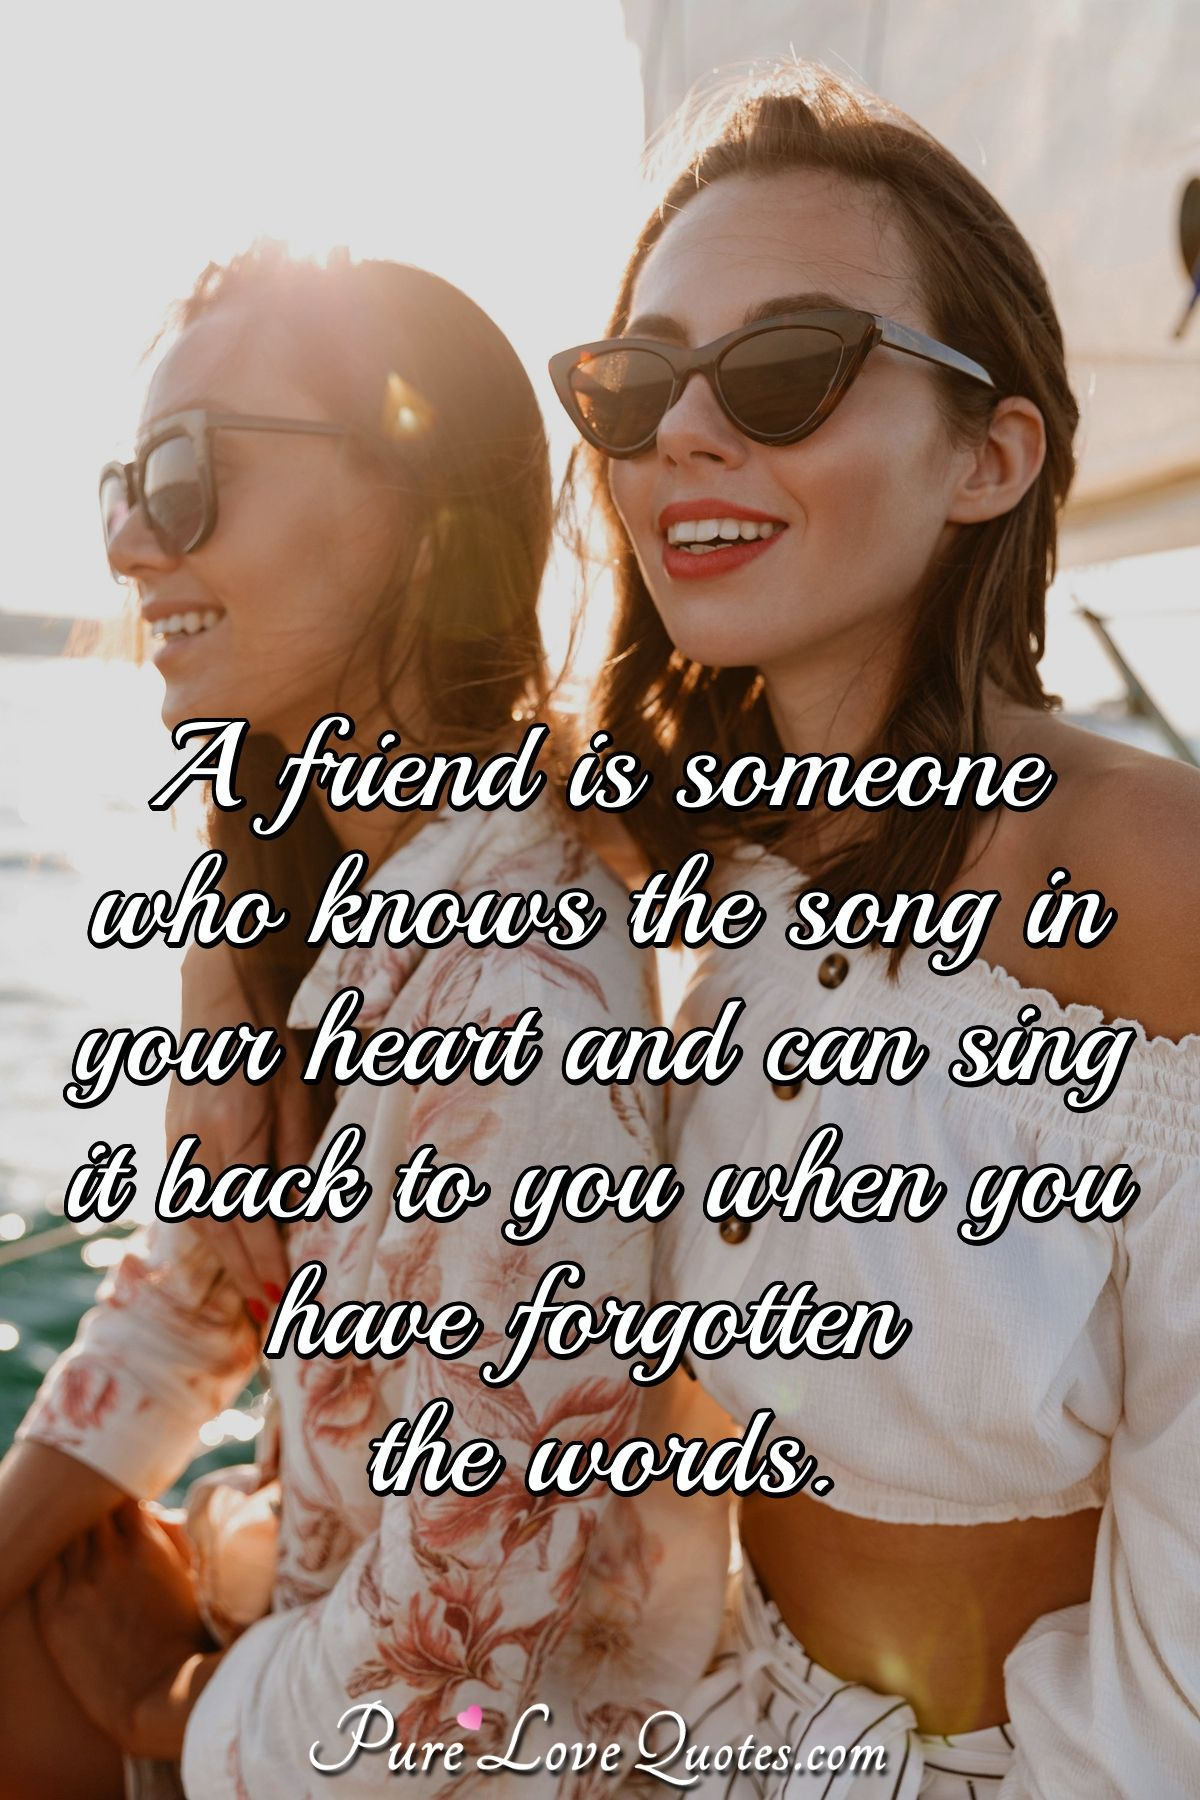 A friend is someone who knows the song in your heart and can sing it back to you when you have forgotten the words. - Anonymous